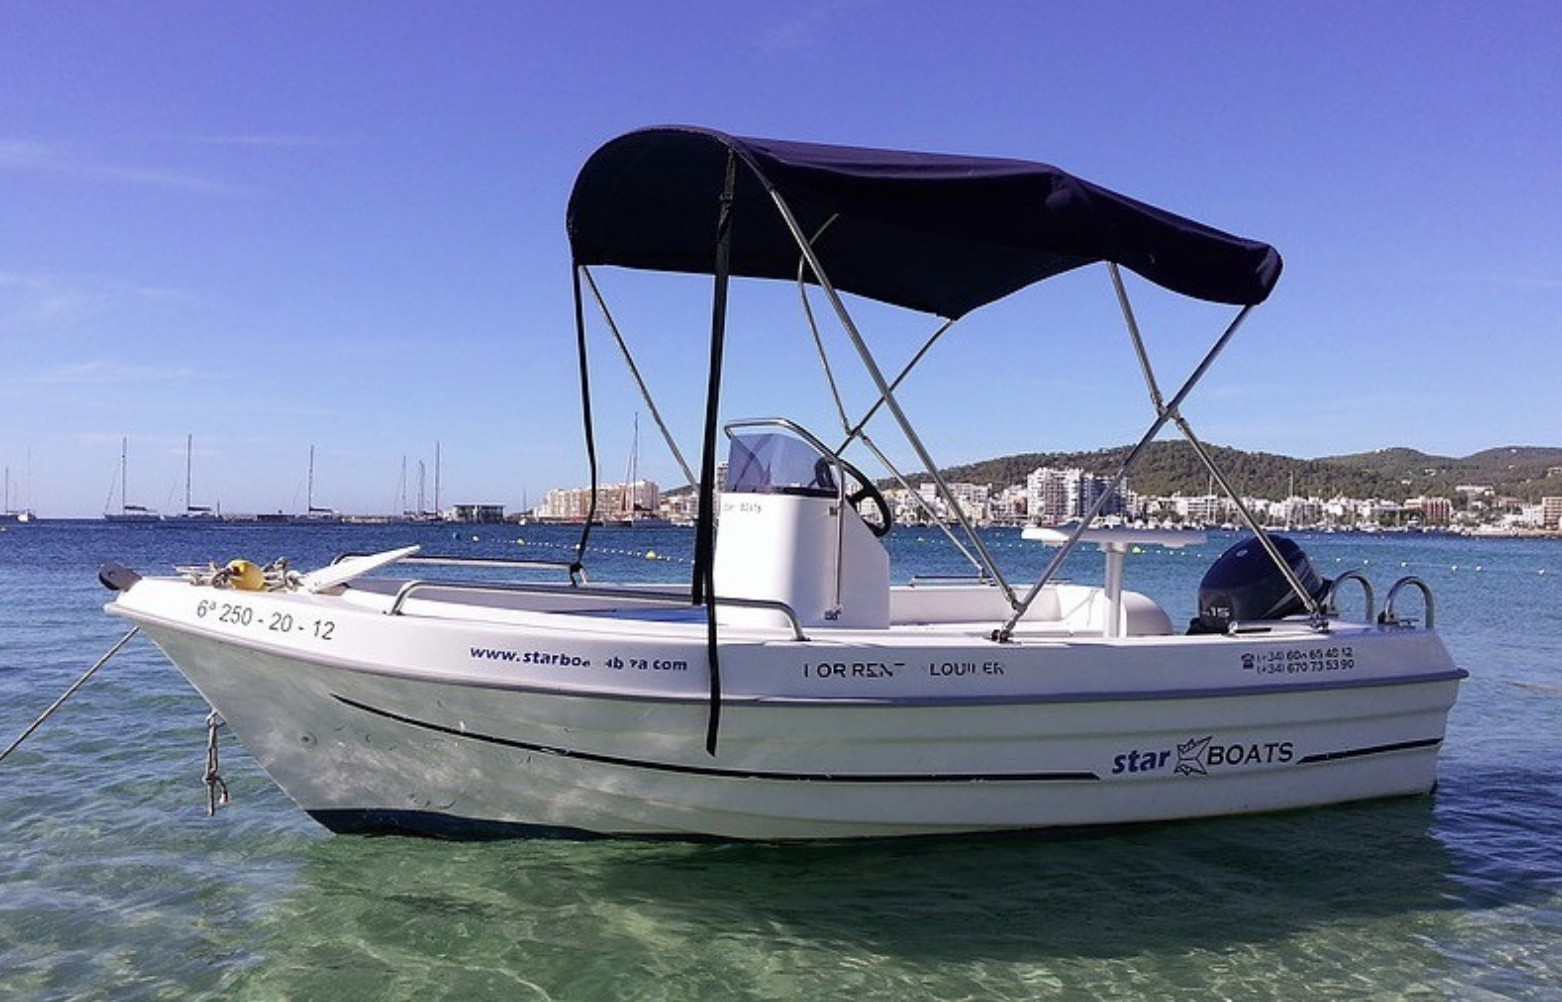 Adventure Boat Rental Without License Ibiza 15 HP